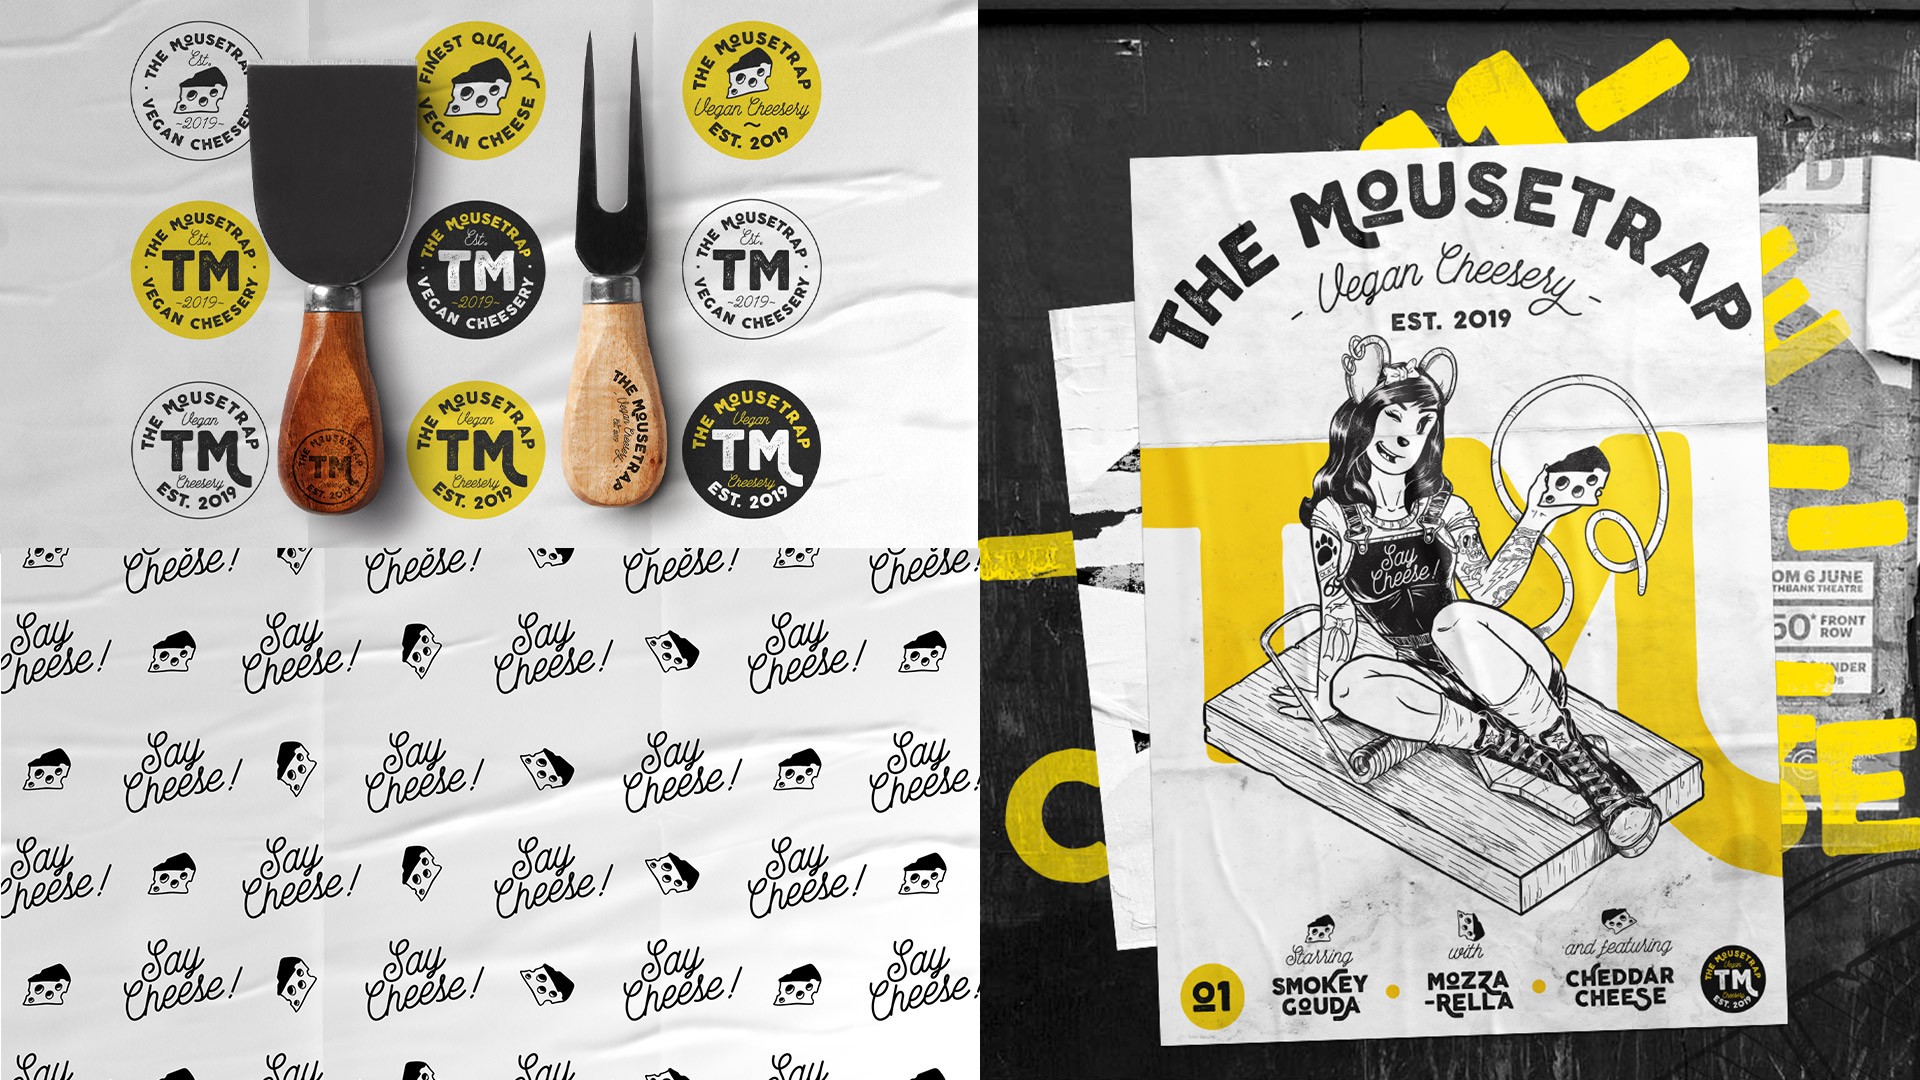 The mousetrap use of branding across different executions